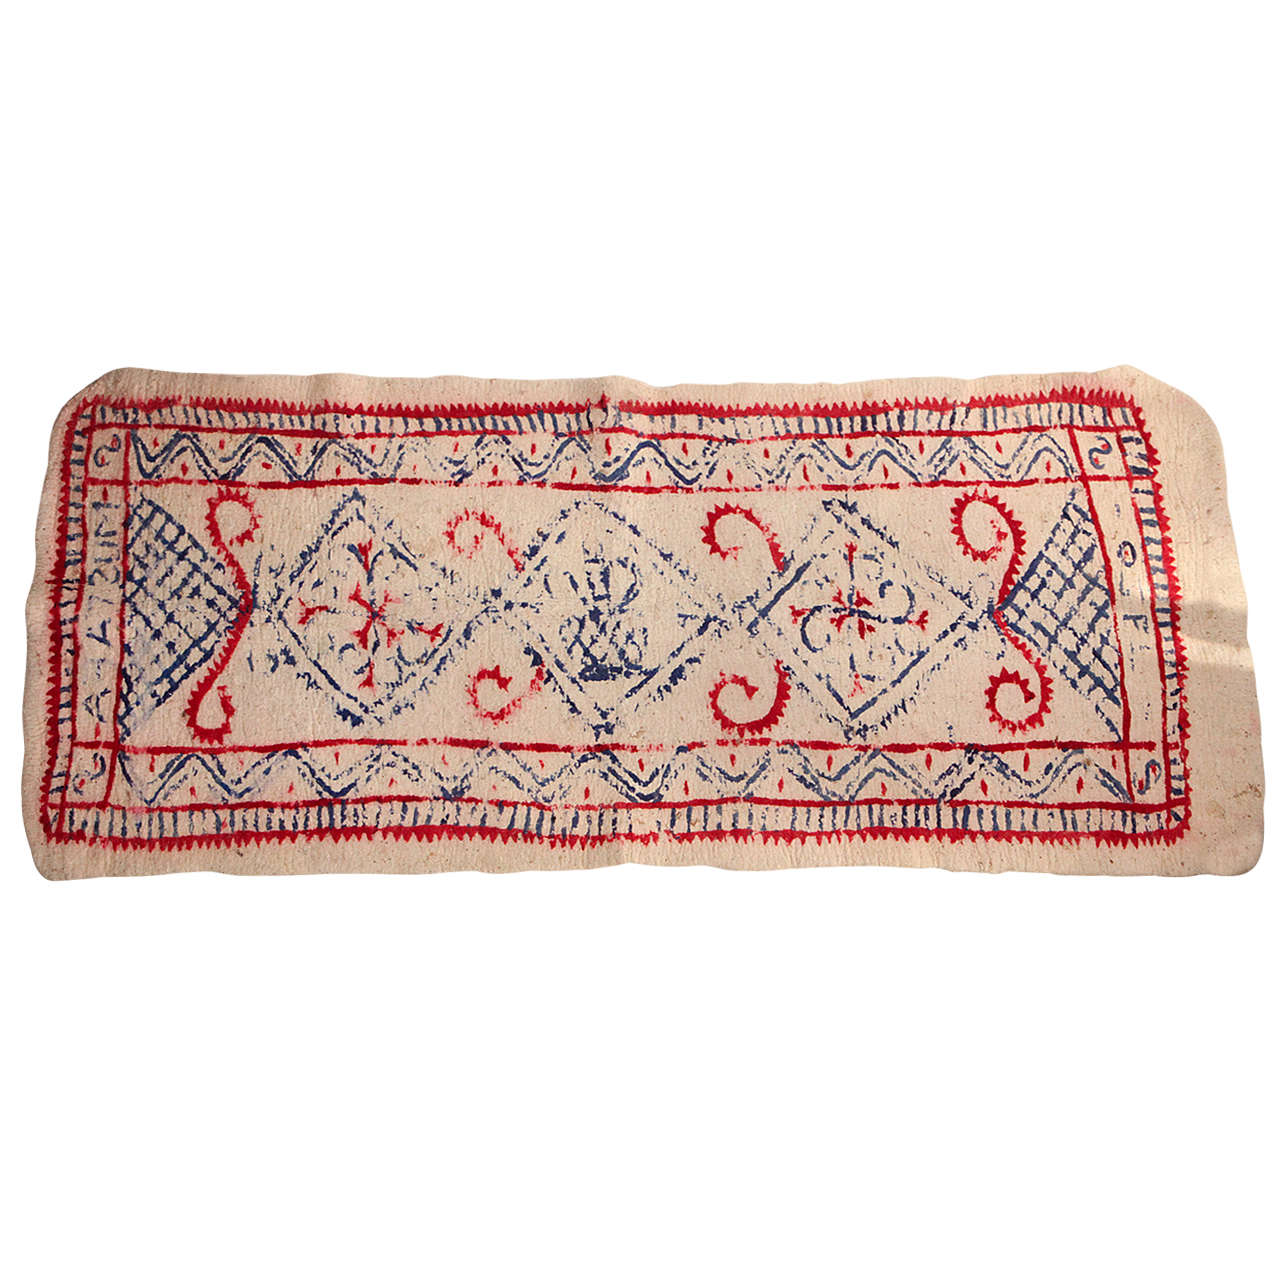 French Felt Cream Colored Rug with Hand Painted Red, Blue, and Pink Pattern